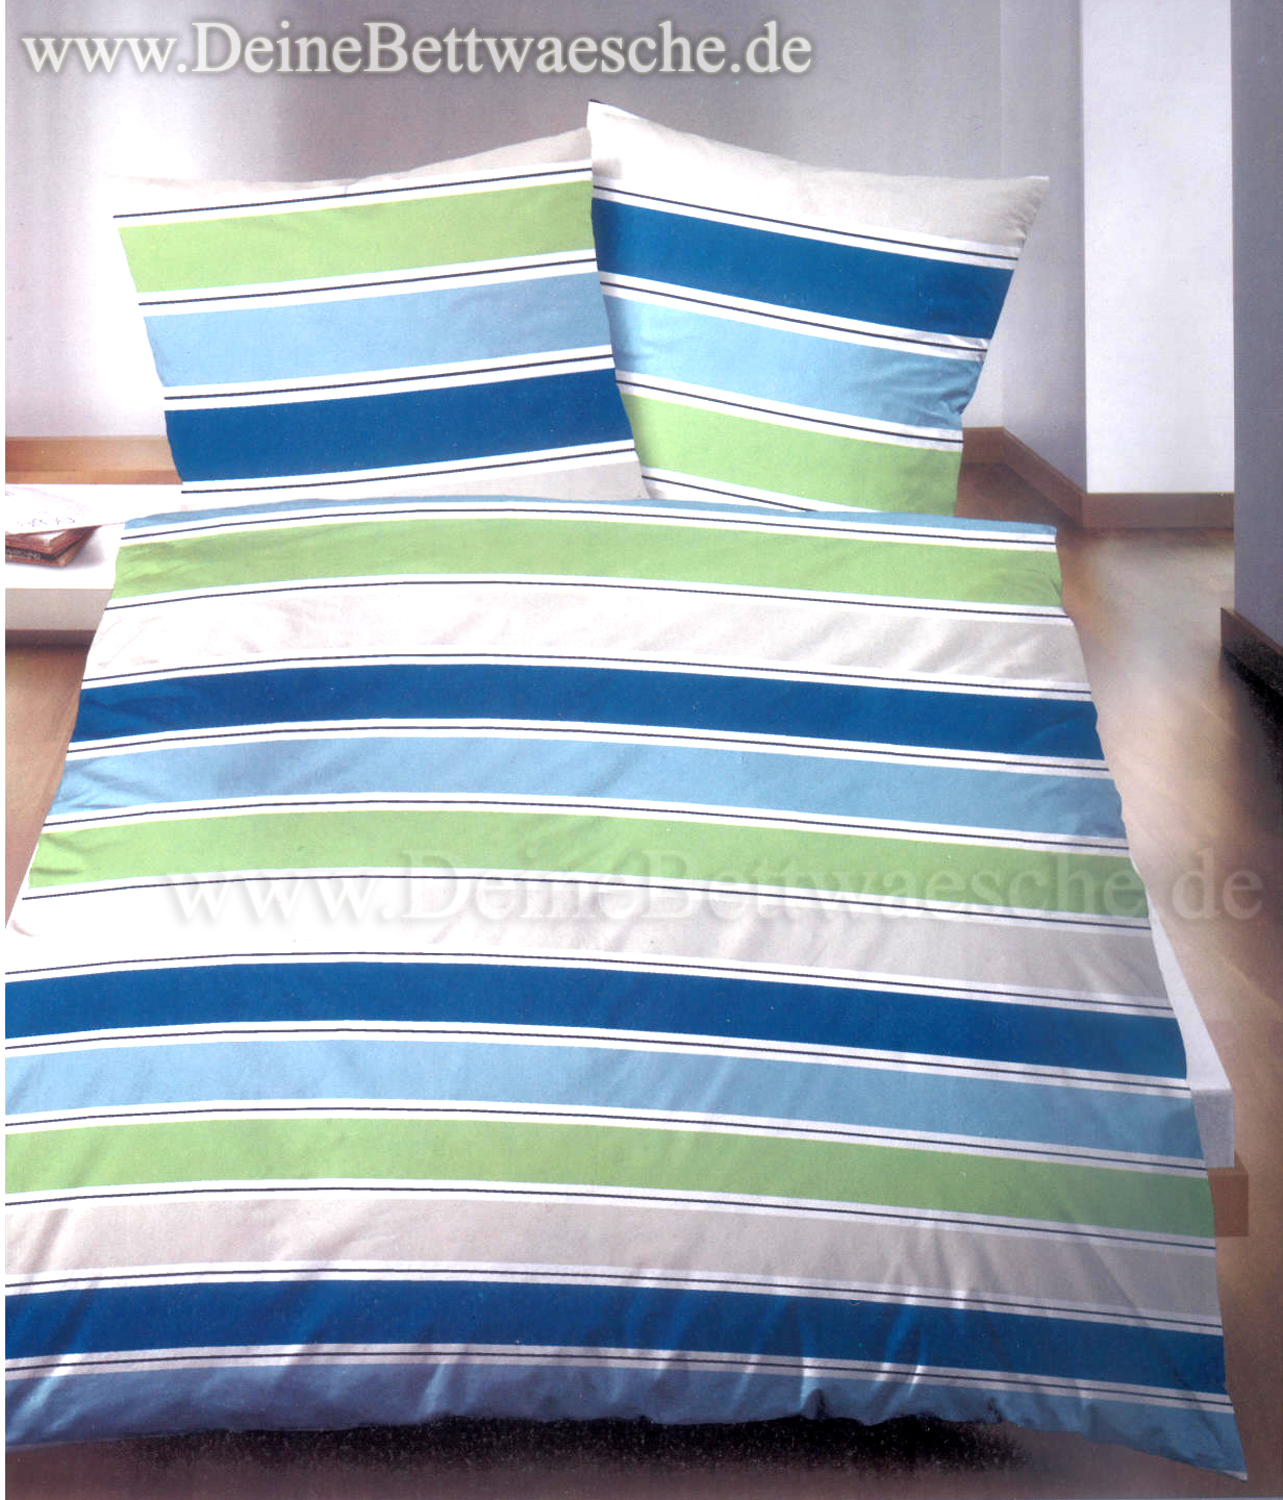 bettw sche castell stripes blau gr n online g nstig kaufen. Black Bedroom Furniture Sets. Home Design Ideas